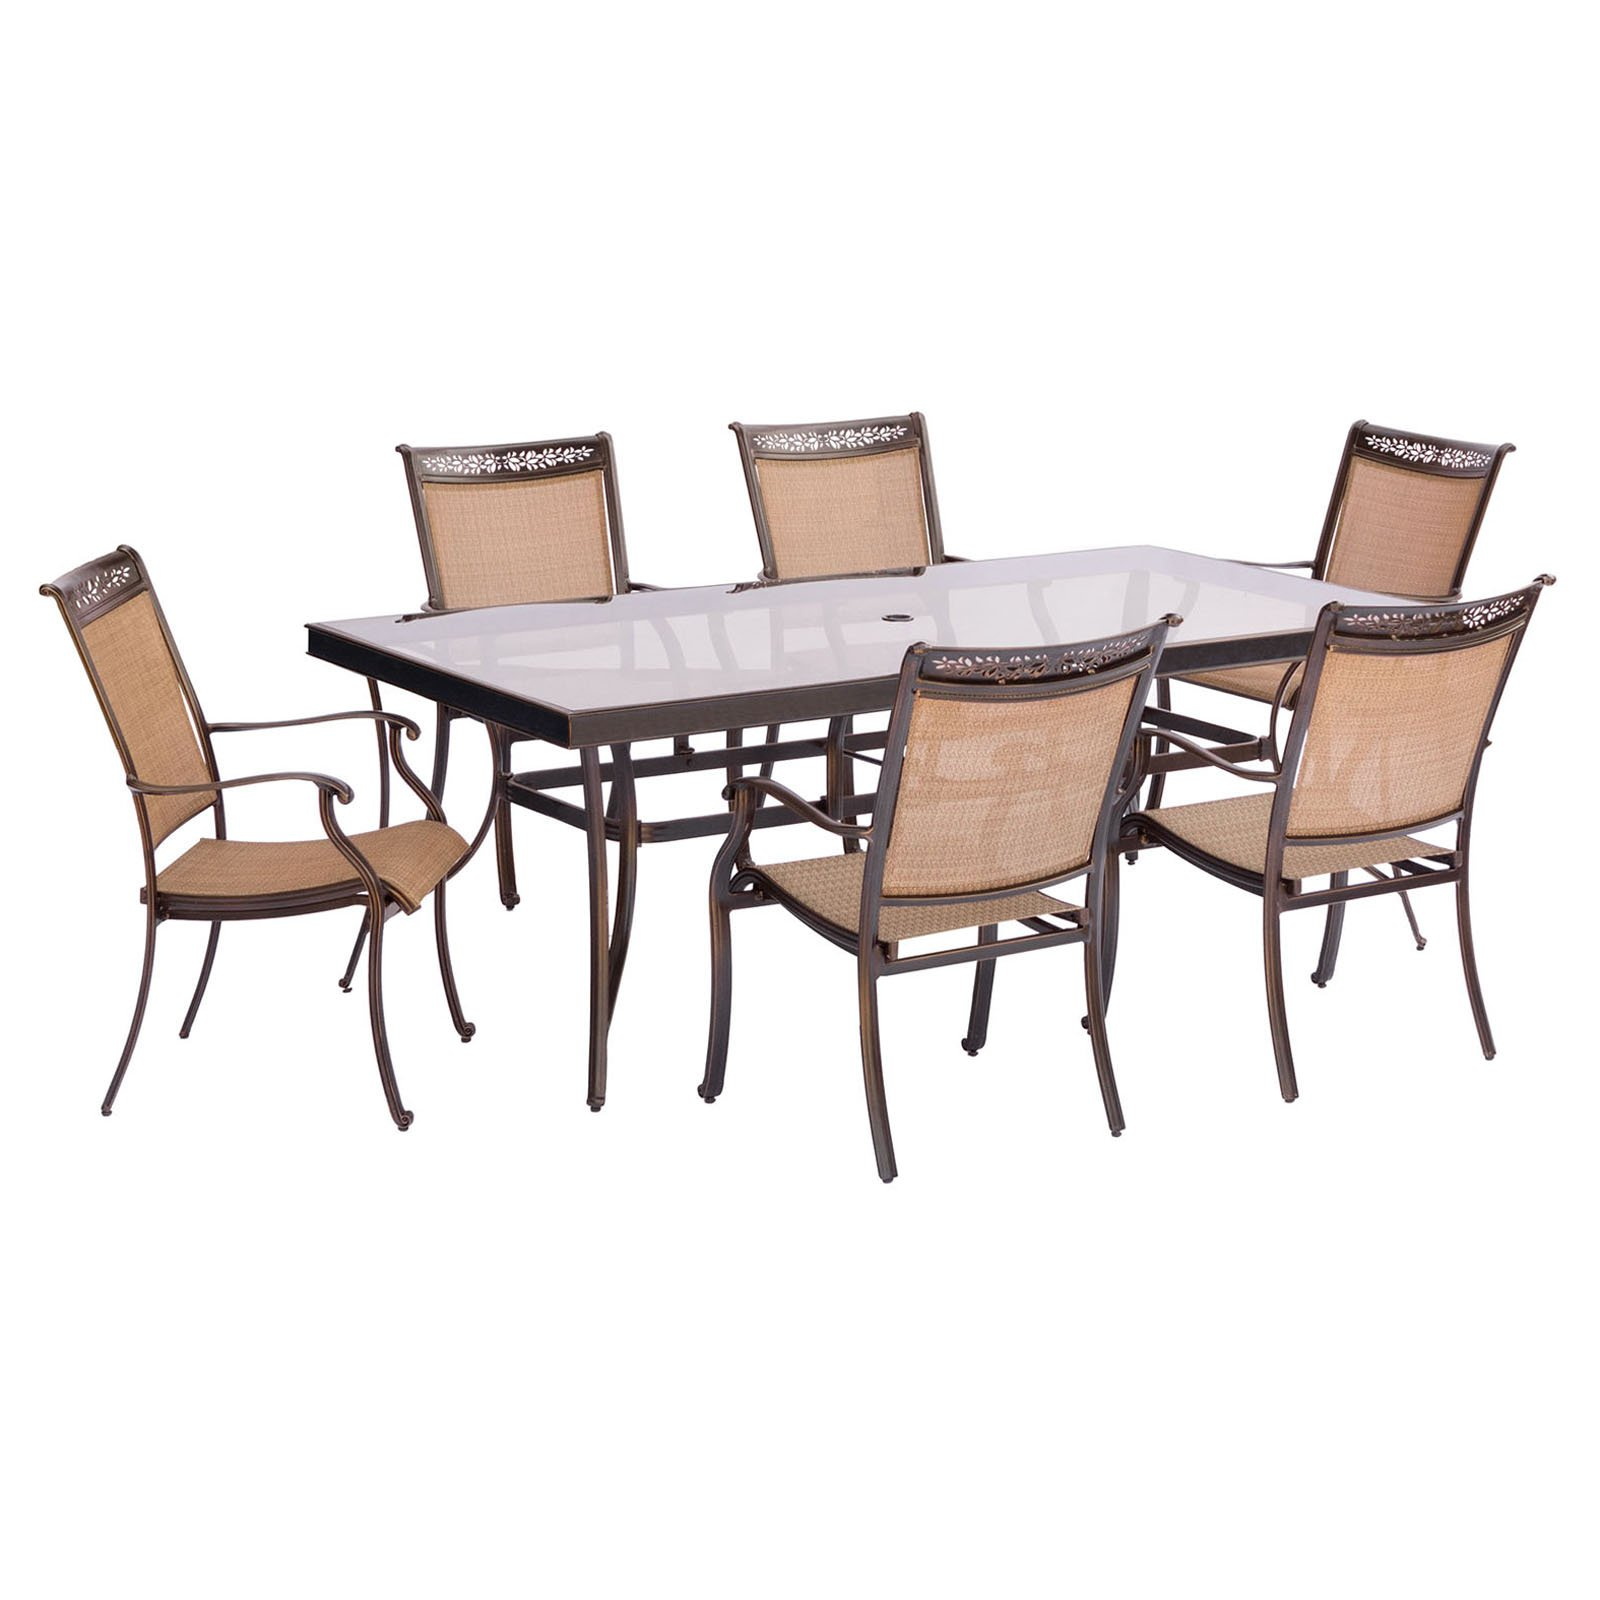 Hanover Fontana 7-Piece Outdoor Dining Set with Glass-Top Table